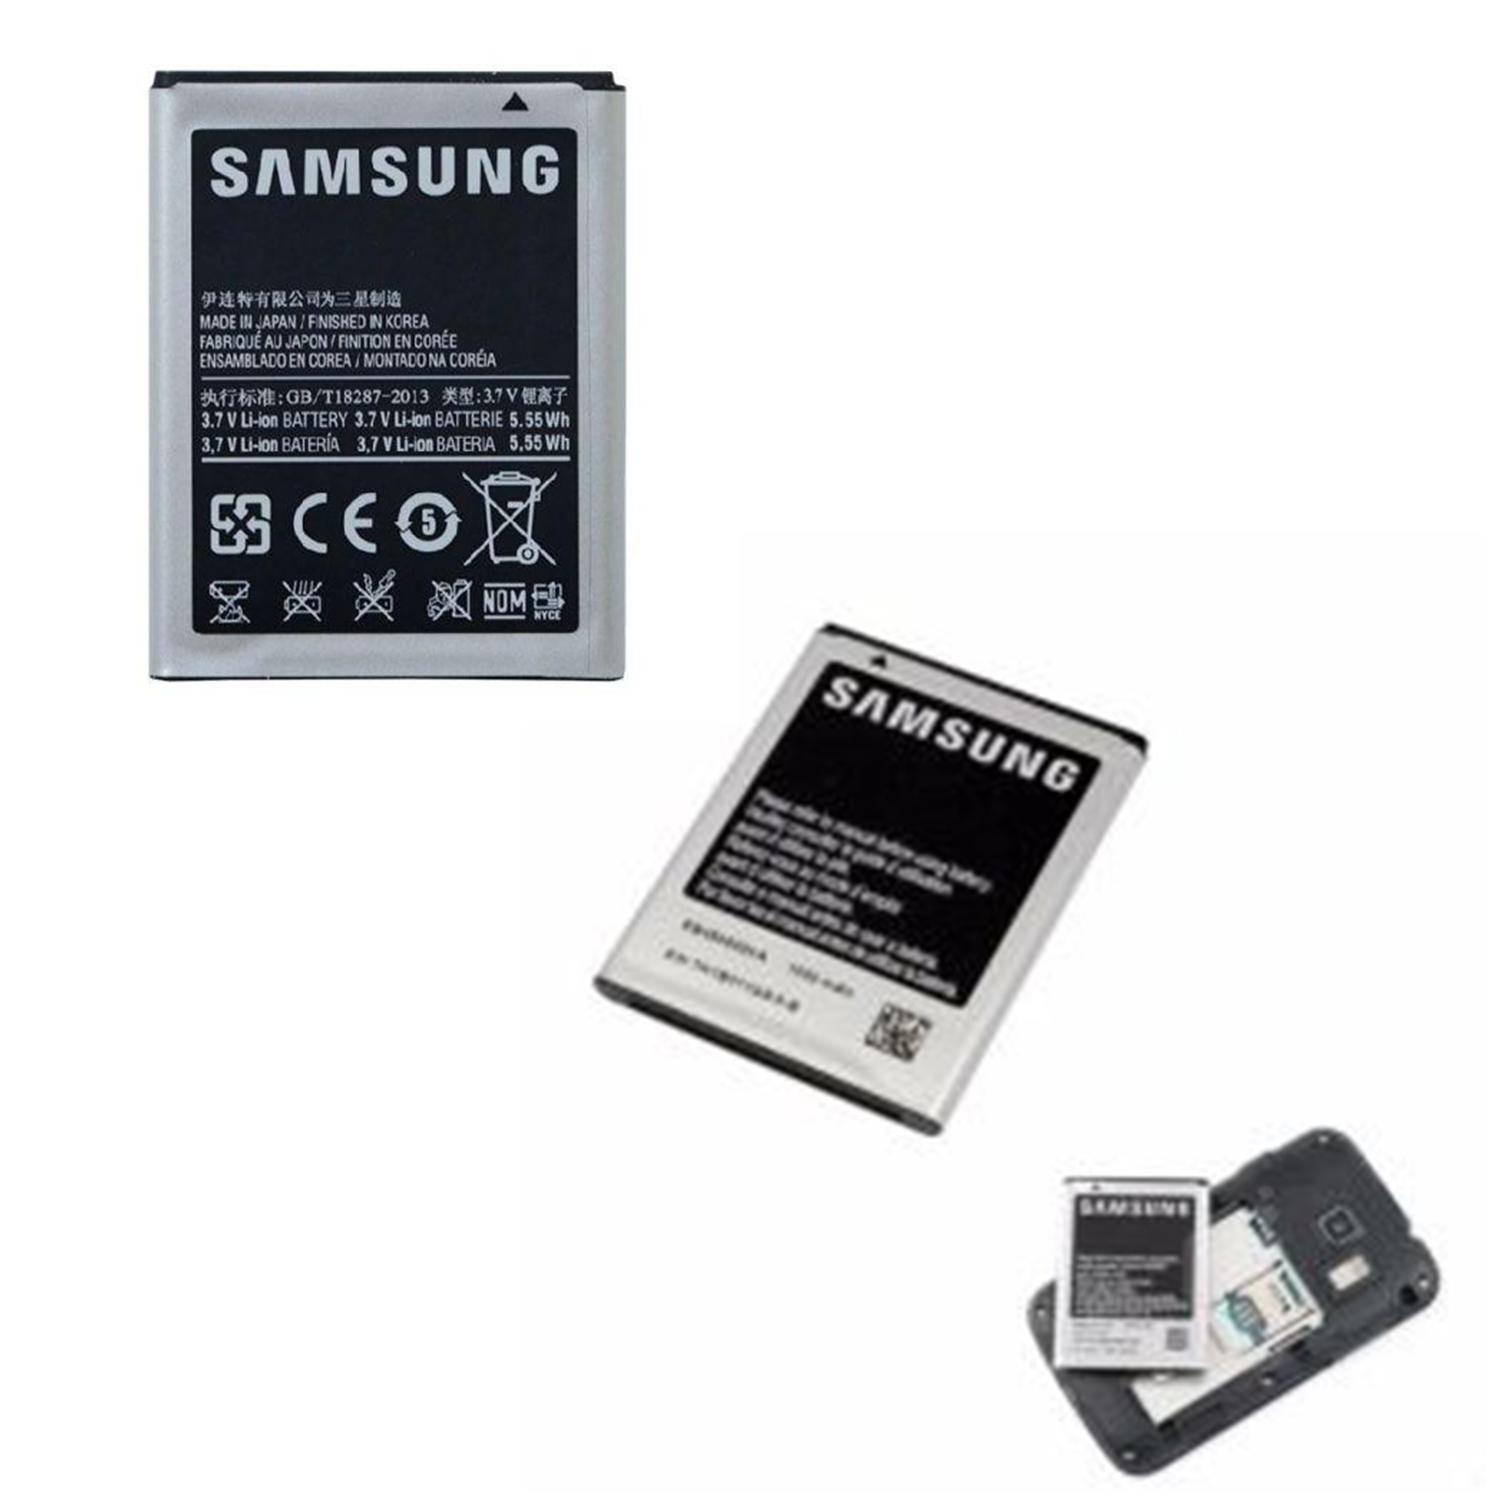 Samsung Baterai Battery HP Samsung Galaxy Wonder I8150 / 5820